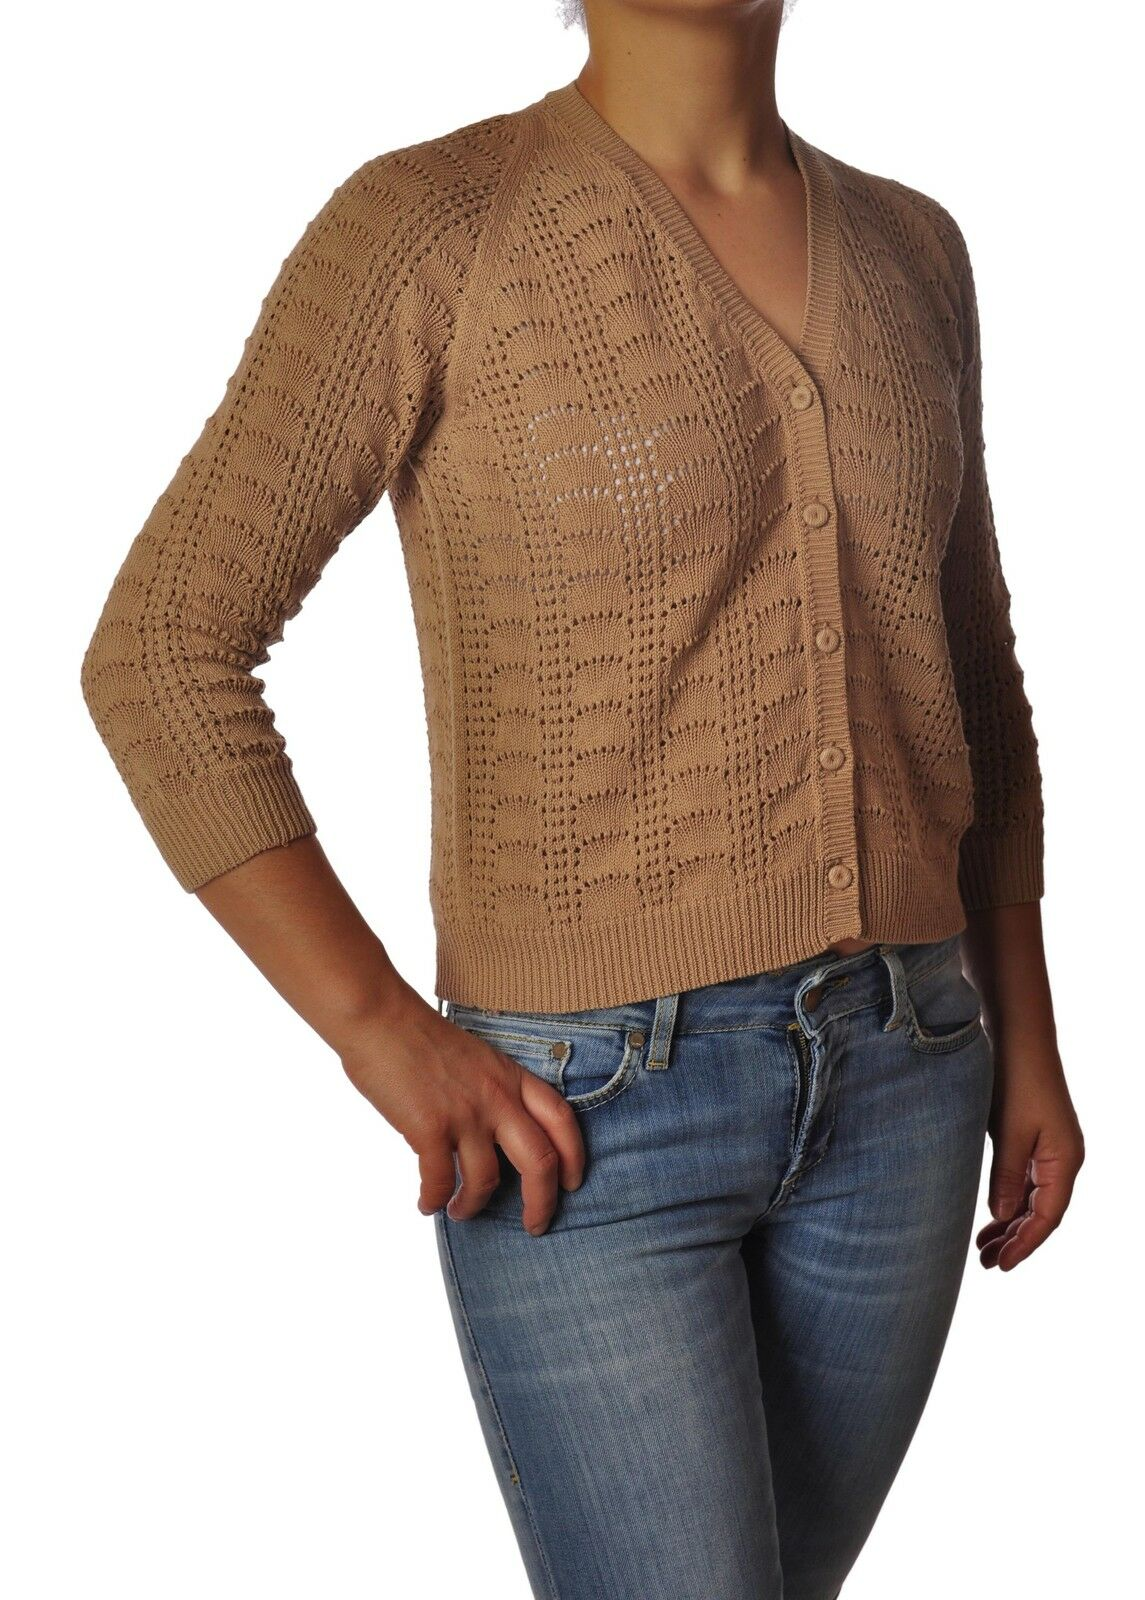 Ottod'ame  -  Cardigan - Donna Donna Donna - Beige - 3785528A181557 24f1d8